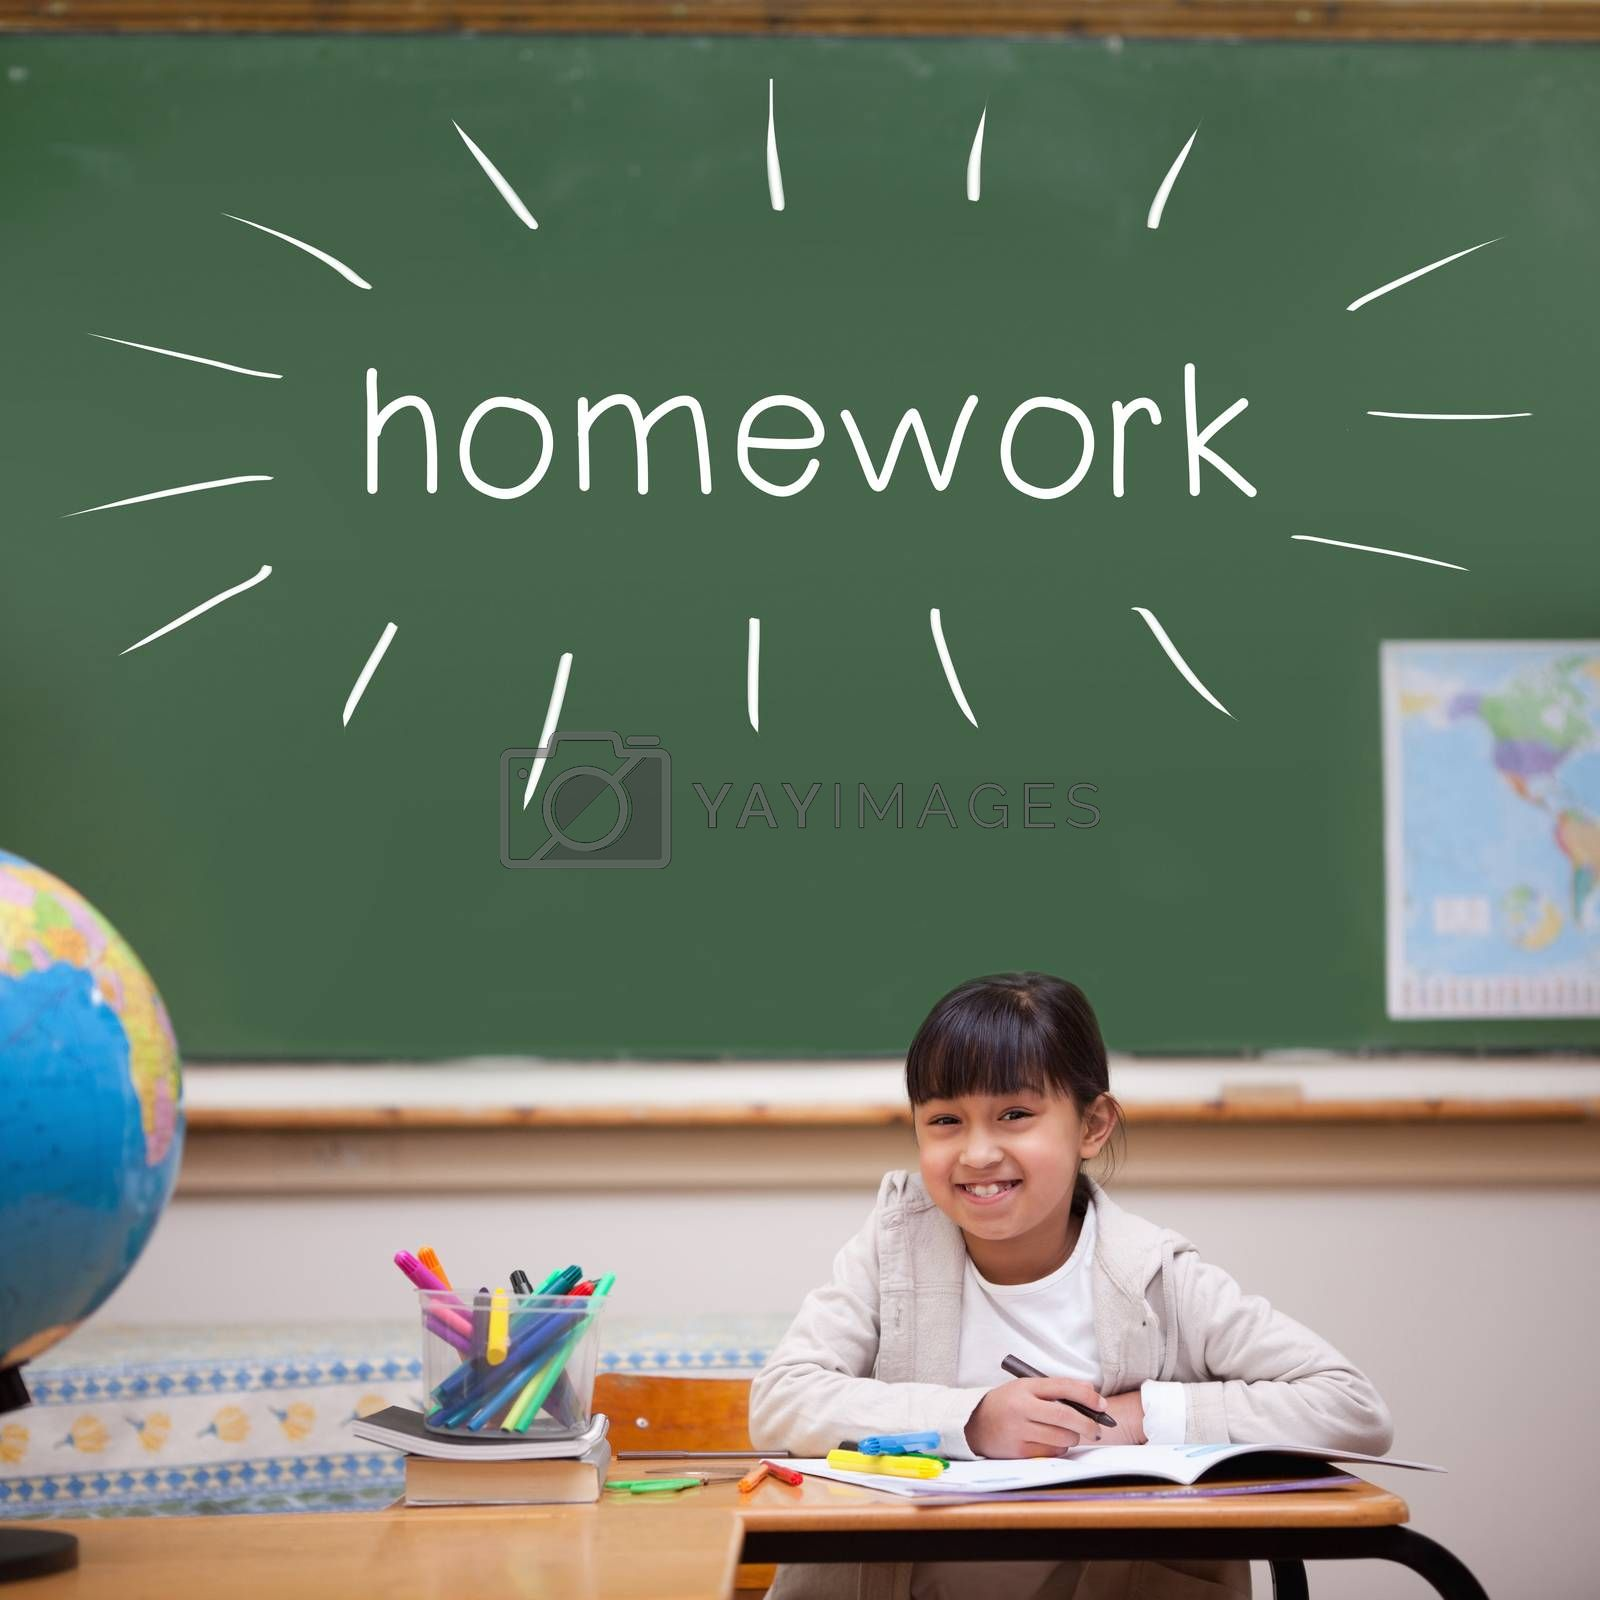 The word homework against cute pupil sitting at desk